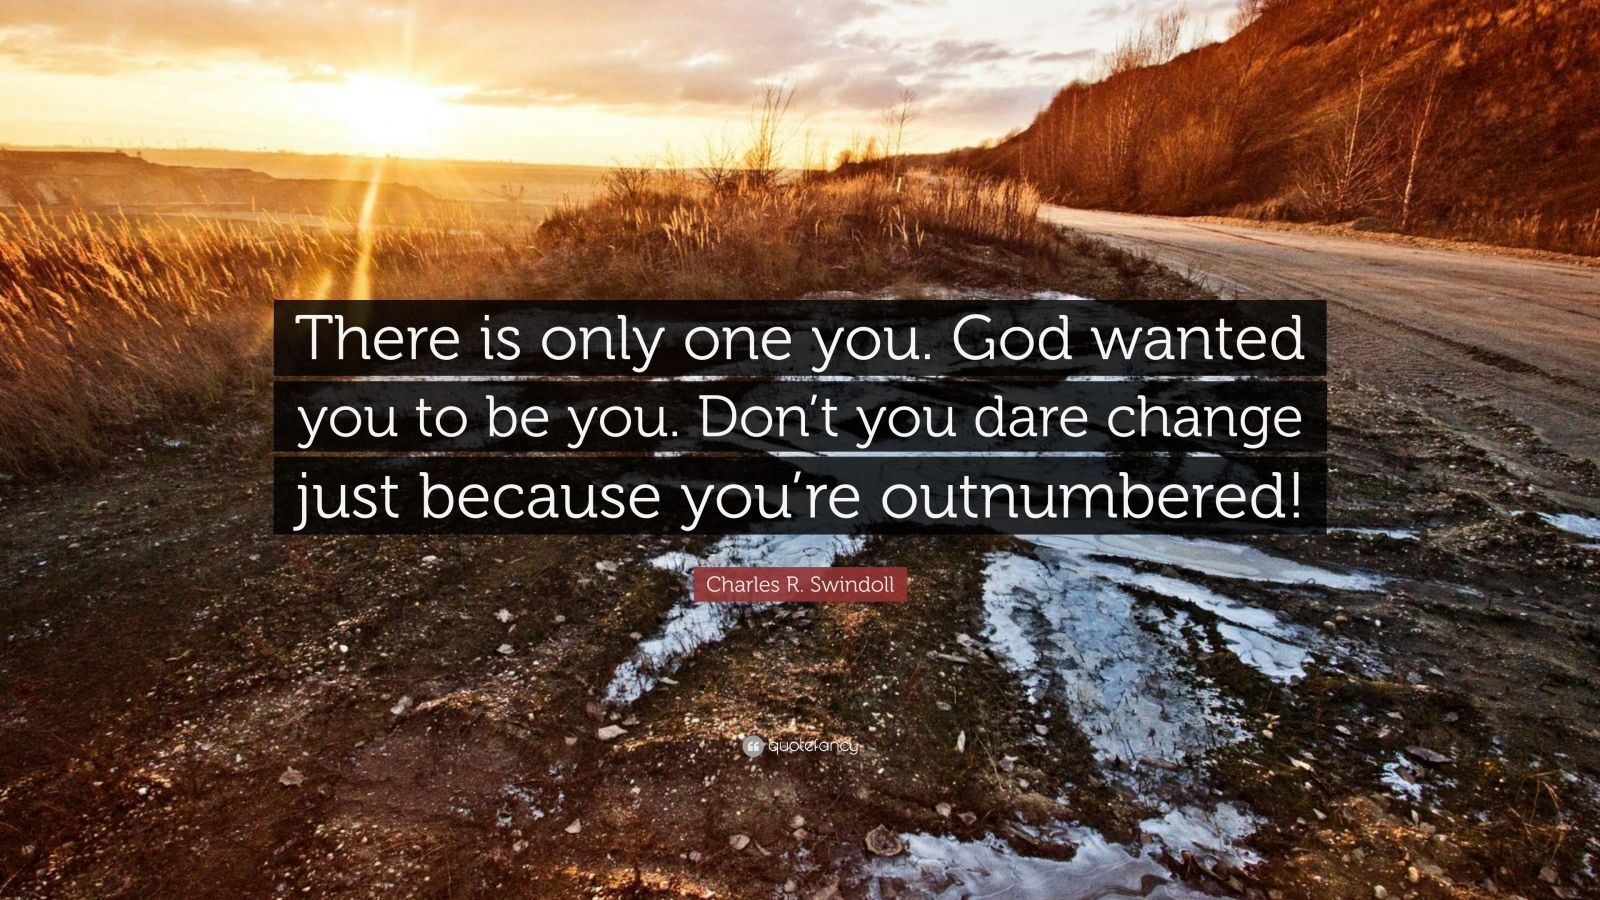 """Charles R. Swindoll Quote: """"There is only one you. God wanted you to be you. Don't you dare change just because you're outnumbered!"""""""